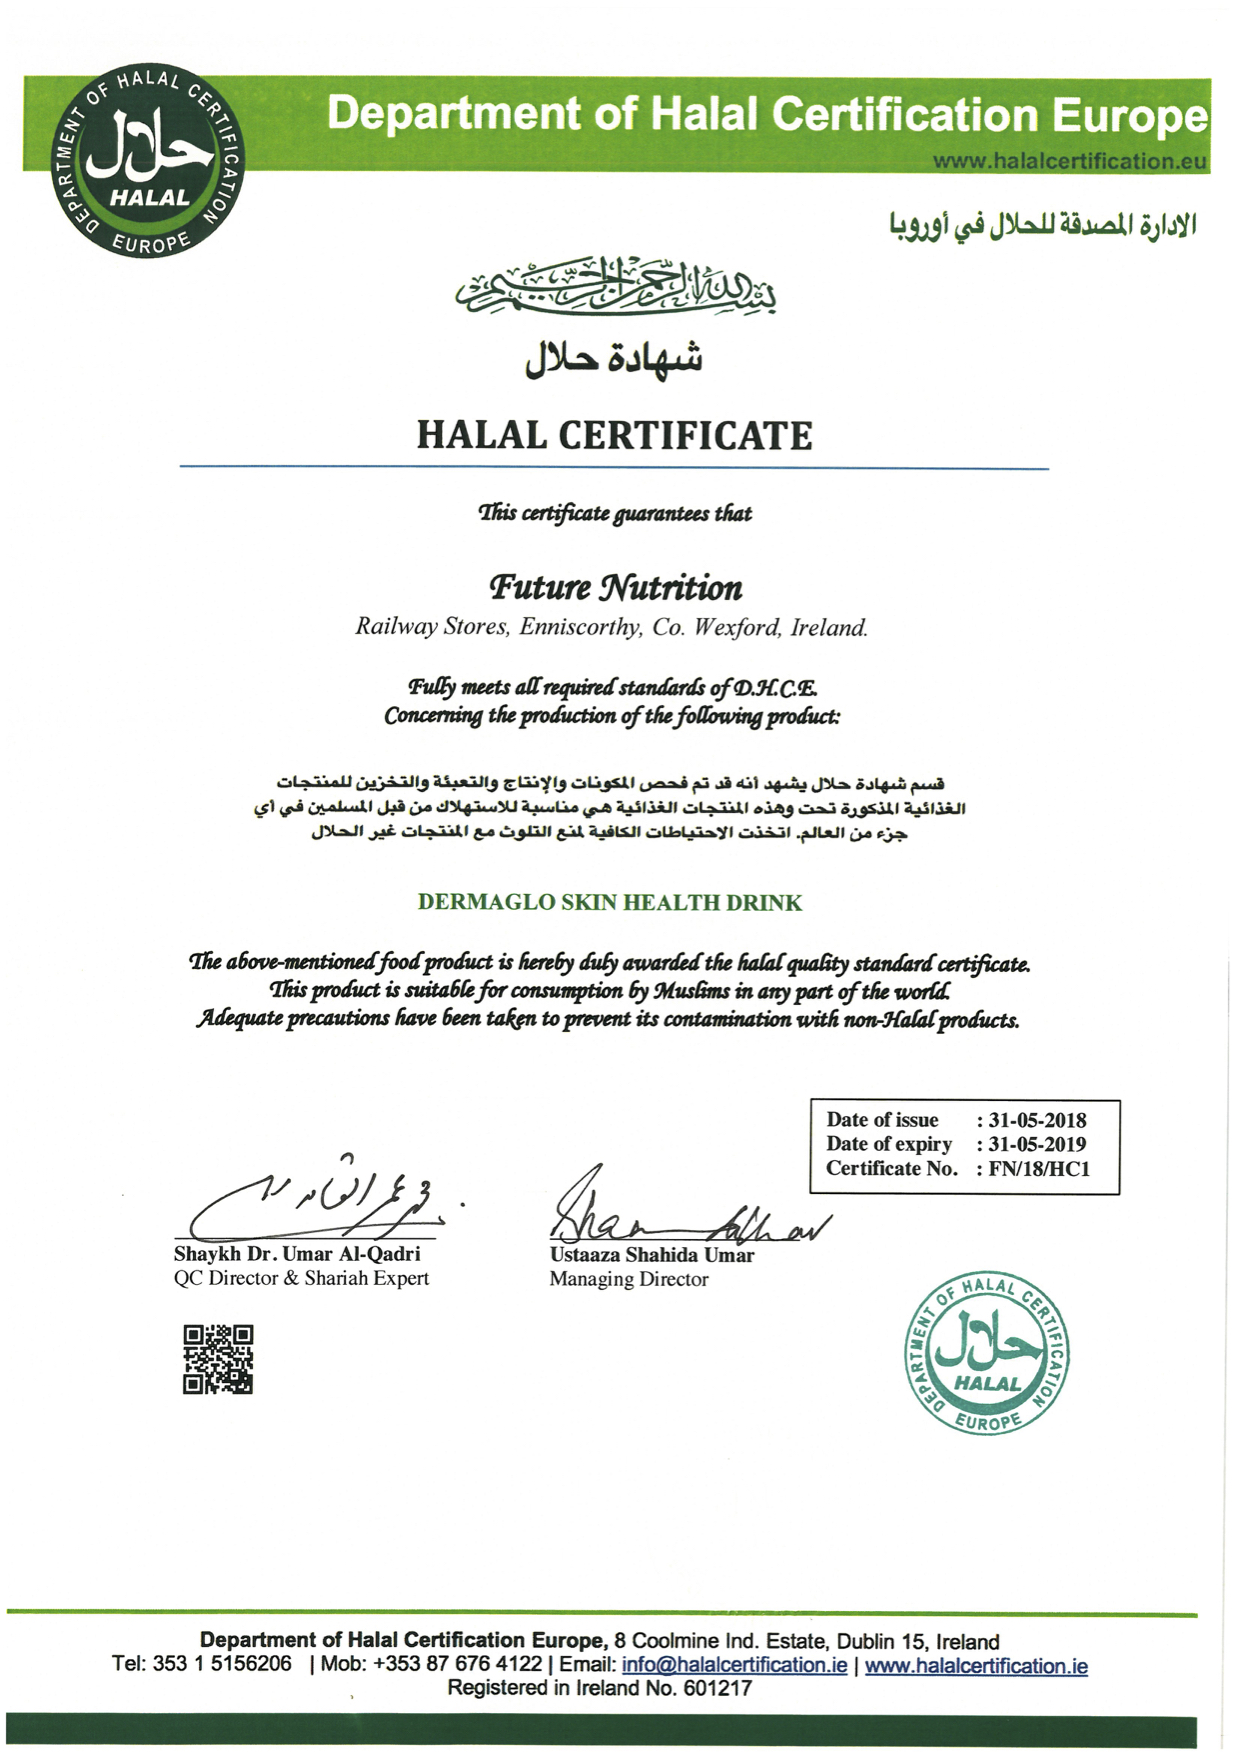 Future Nutrition Halal Certificate 2018 – Department of